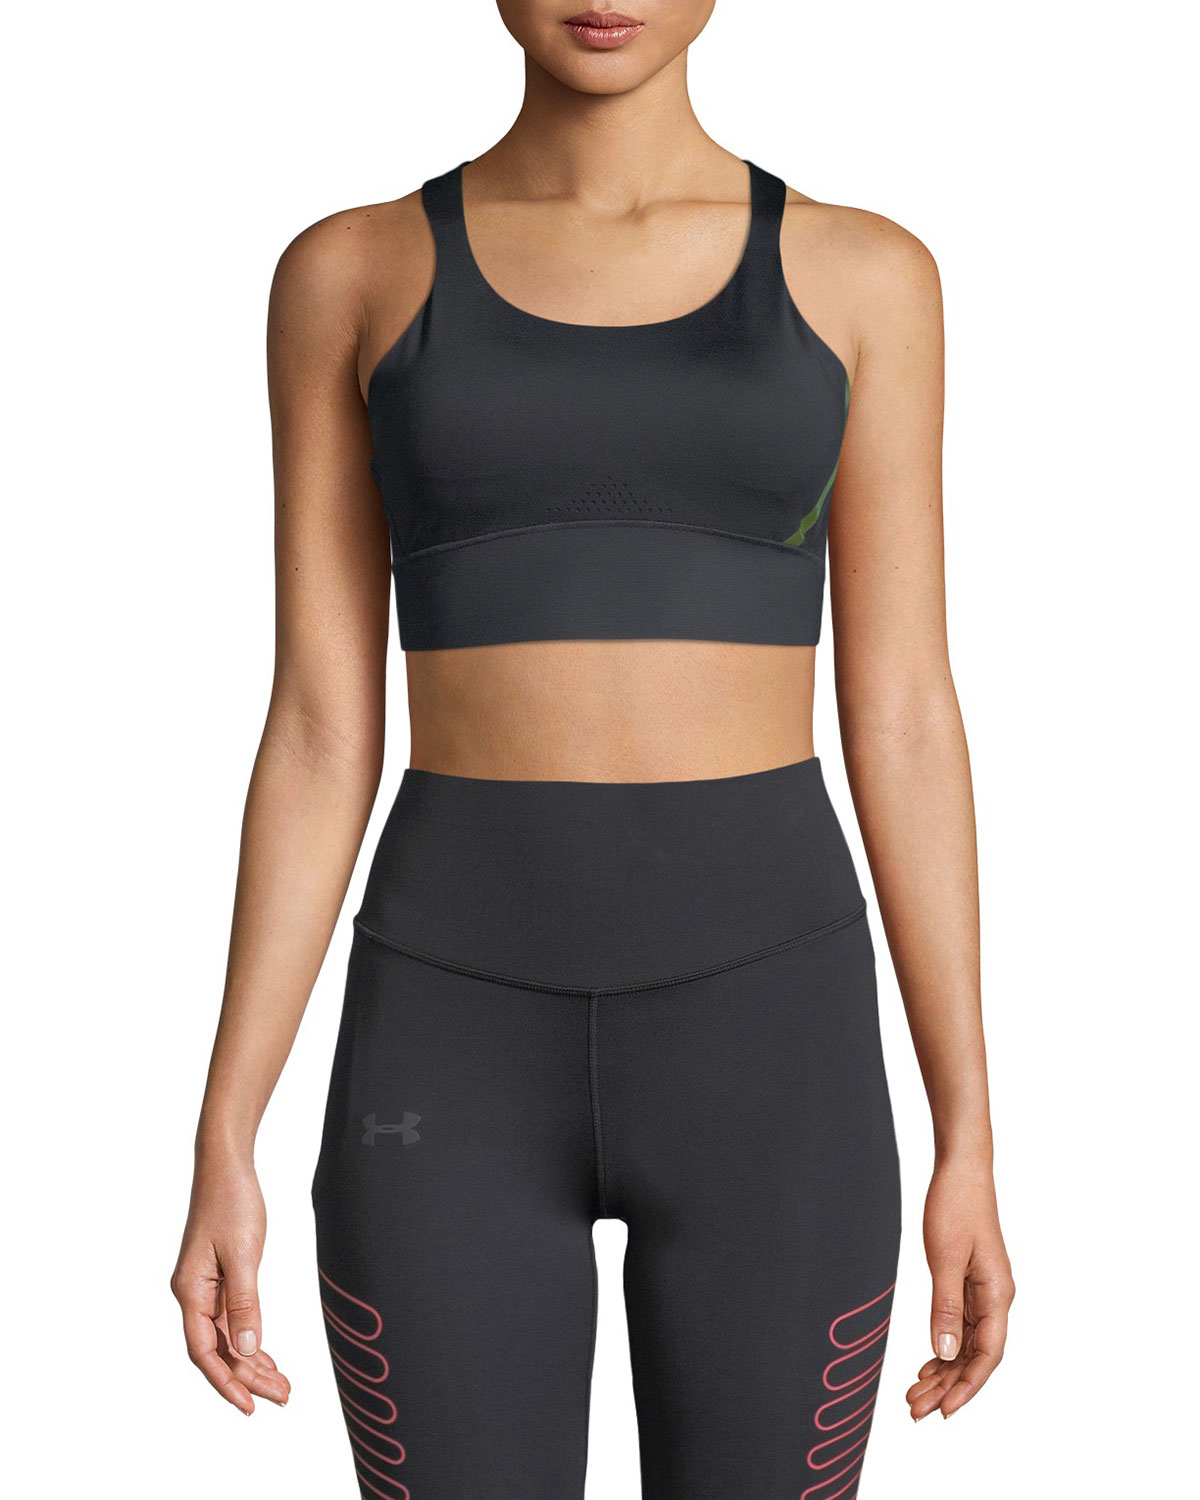 f0dd45e338 Breathelux Perforated Mid Performance Sports Bra